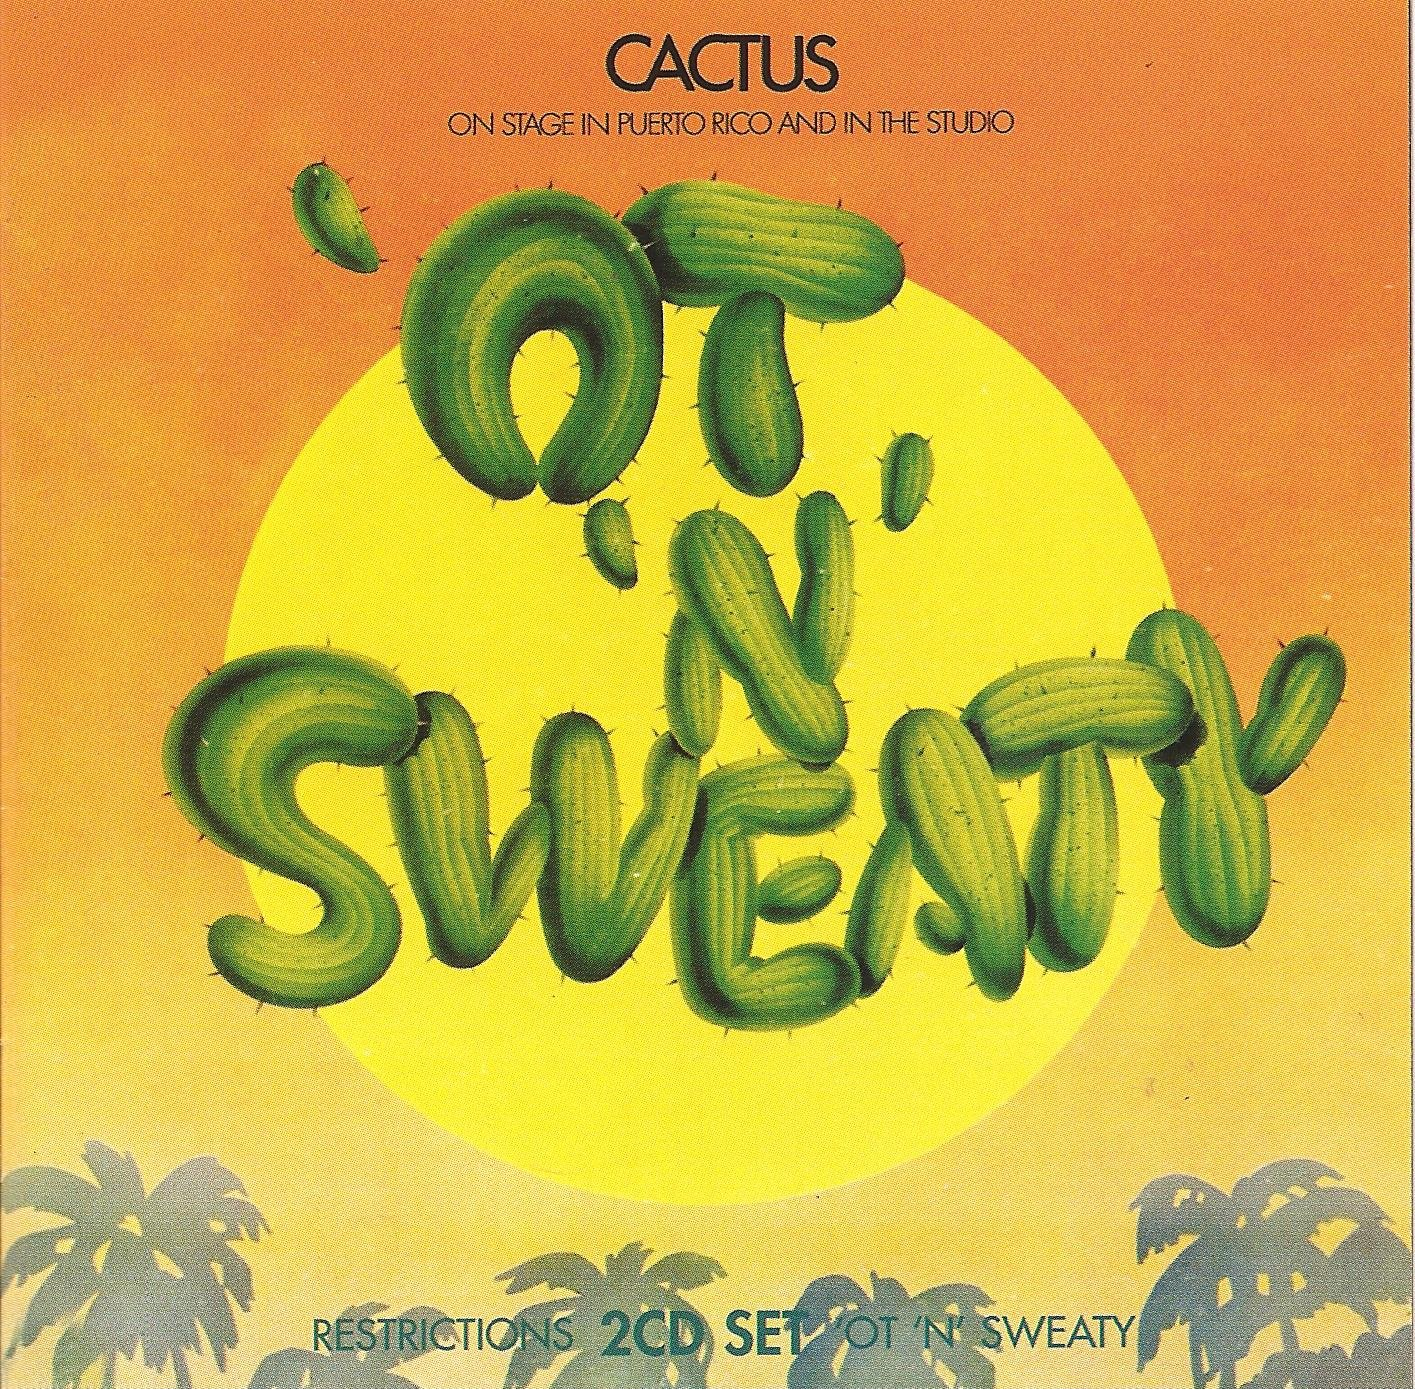 CACTUS - Restrictions / Ot N Sweaty - Amazon.com Music